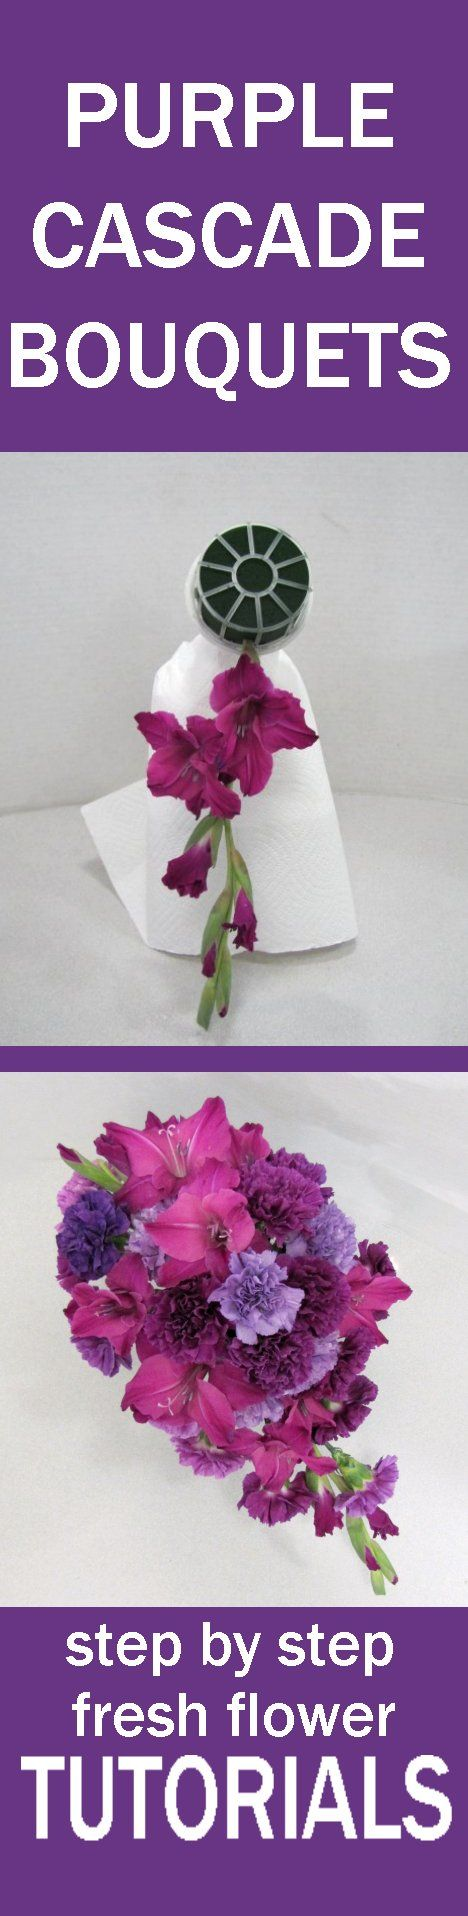 Purple wedding flower bouquets easy free fresh flower tutorials purple wedding flower bouquets easy free fresh flower tutorials learn how to make bridal bouquets wedding corsages groom boutonnieres church d izmirmasajfo Image collections